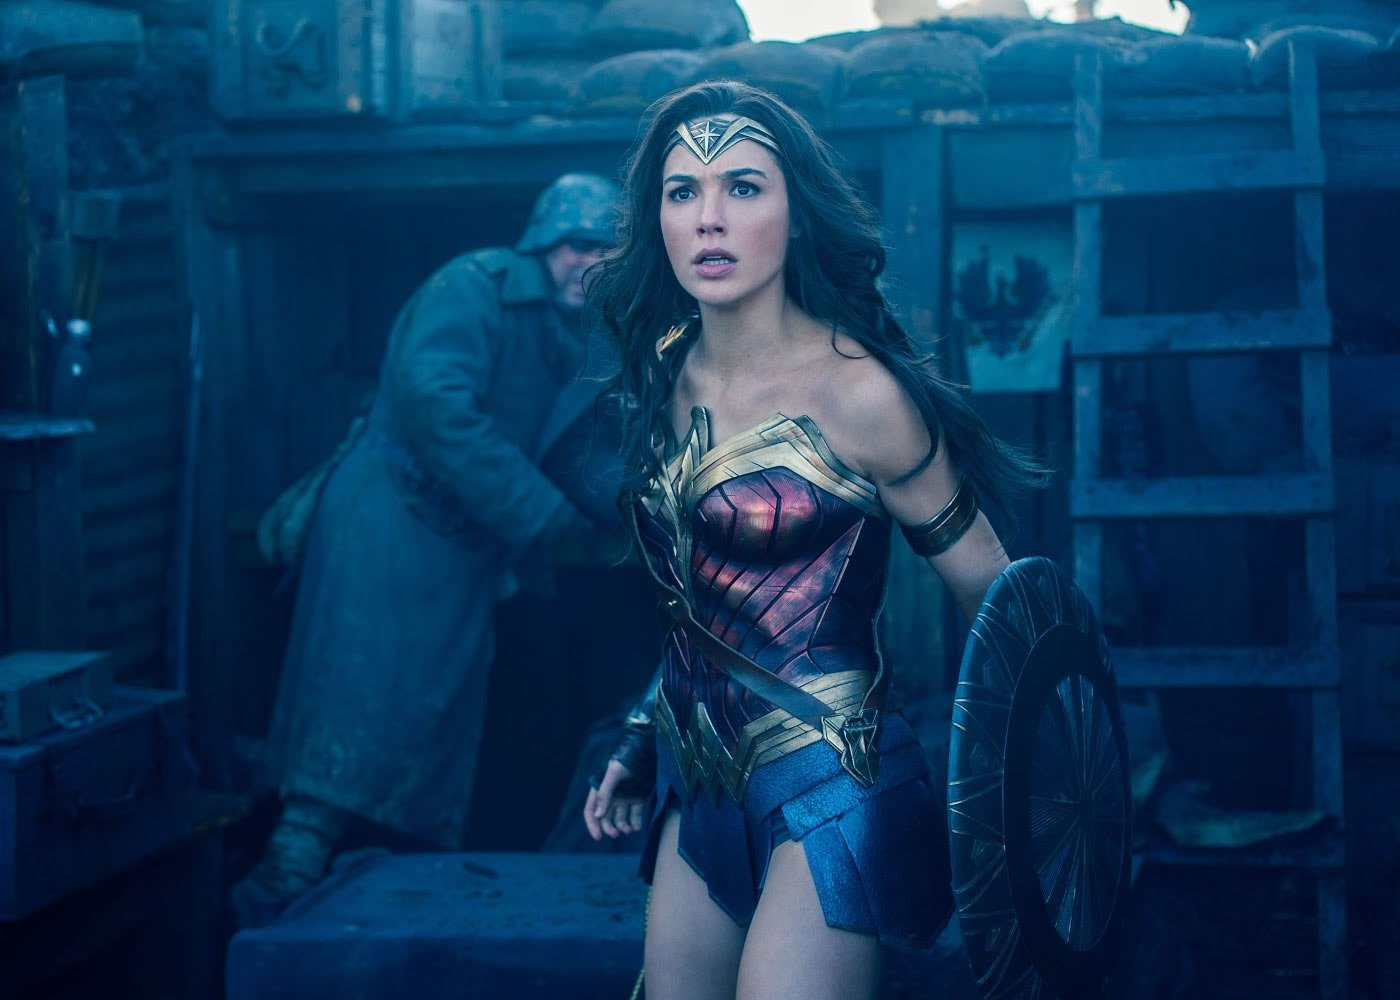 Wonder Woman Has No Deleted Scenes Says Patty Jenkins